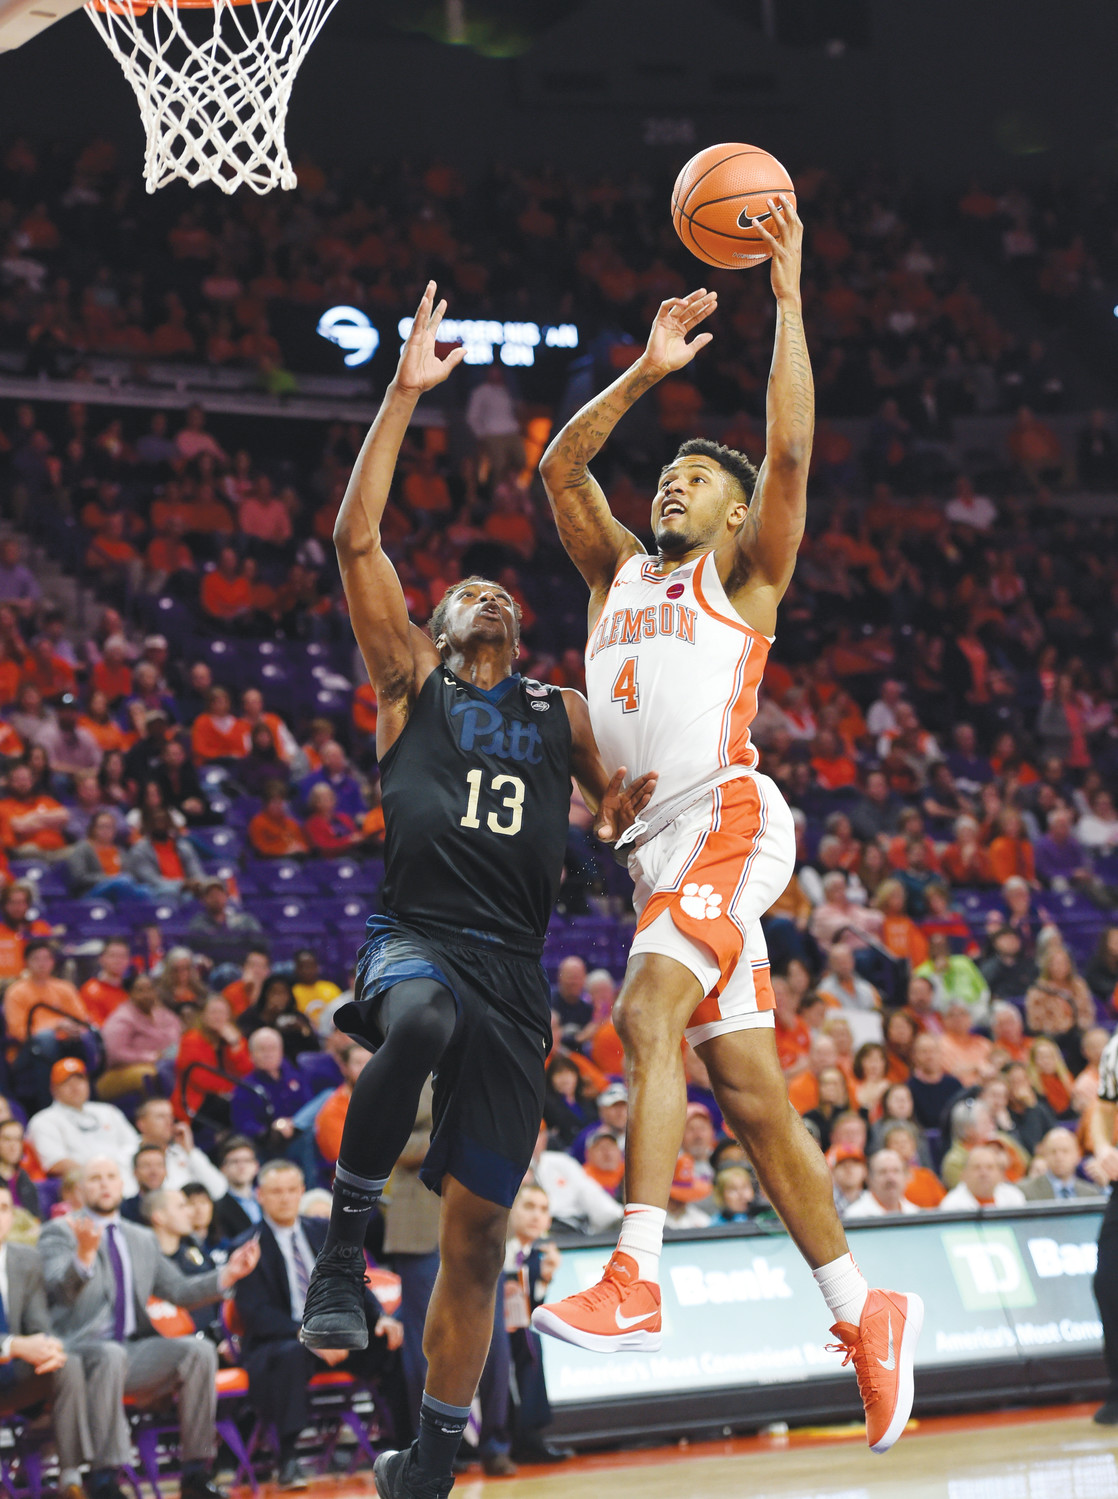 Clemson's Shelton Mitchell (4) drives in to score while defended by Pittsburgh's Khameron Davis during the first half of the Tigers' 72-48 victory over the Panthers on Thursday in Clemson.